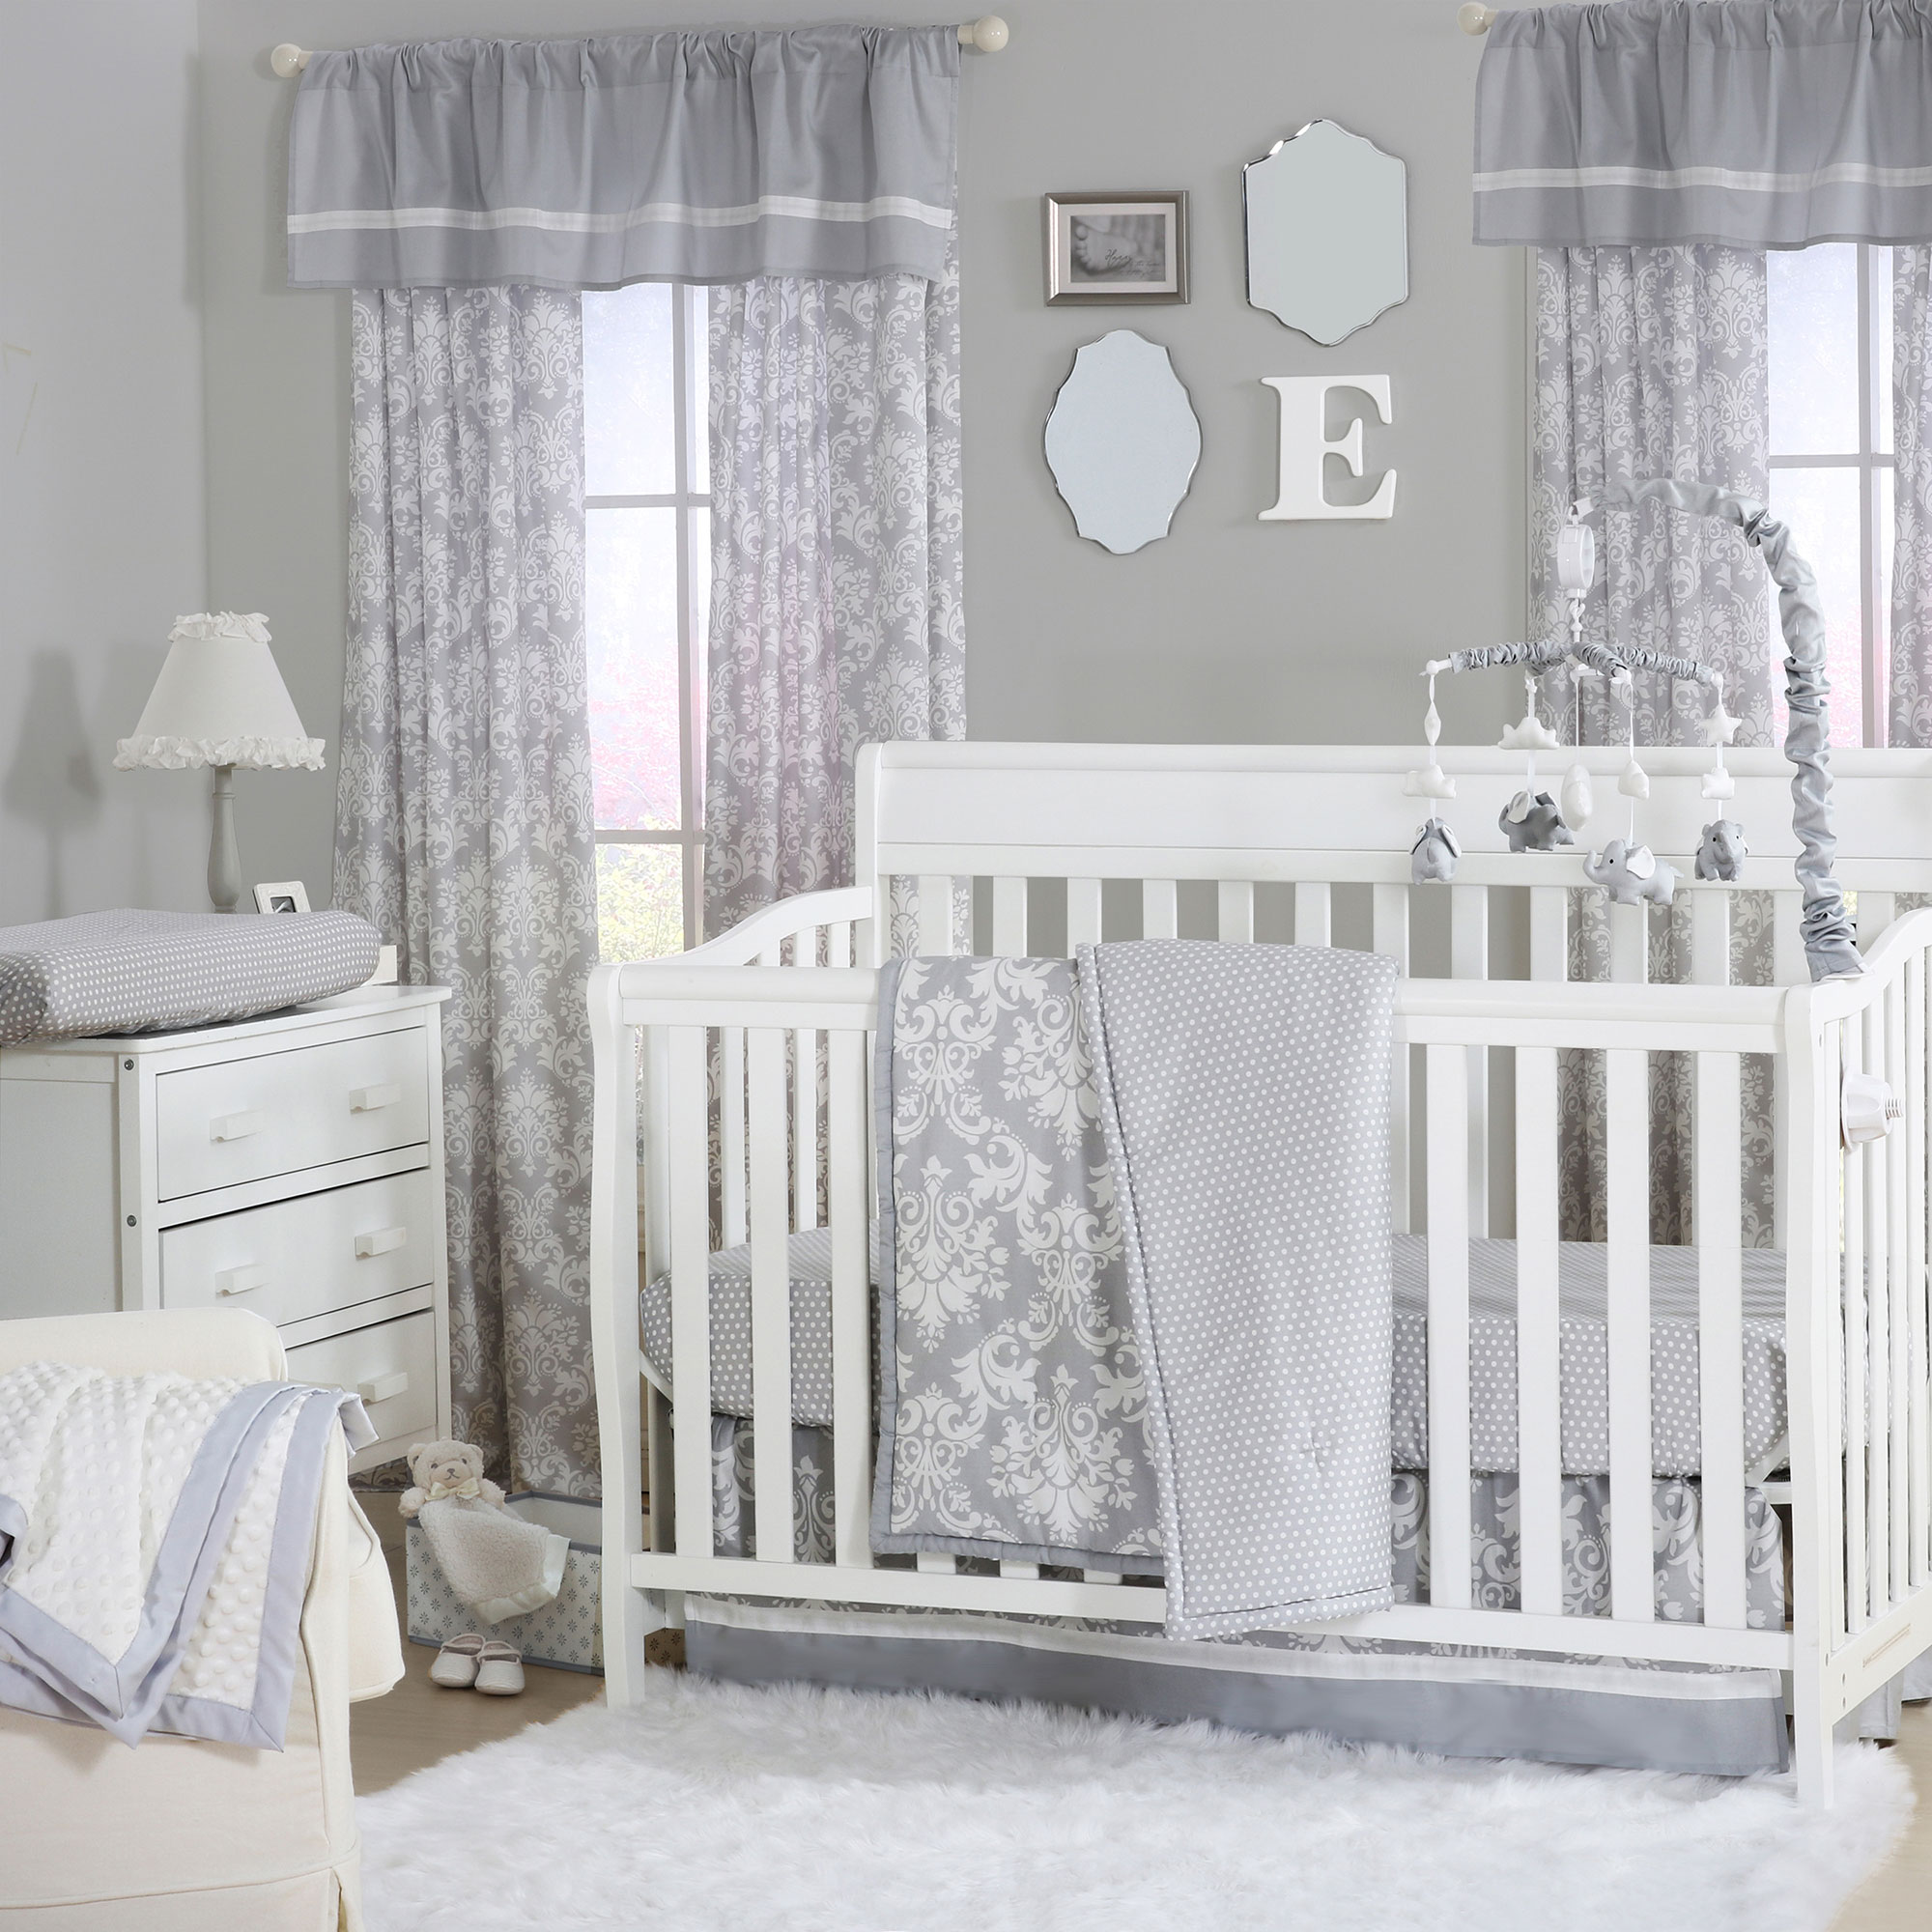 Peanut Shell 4 Piece Baby Crib Bedding Set - Grey and Whi...